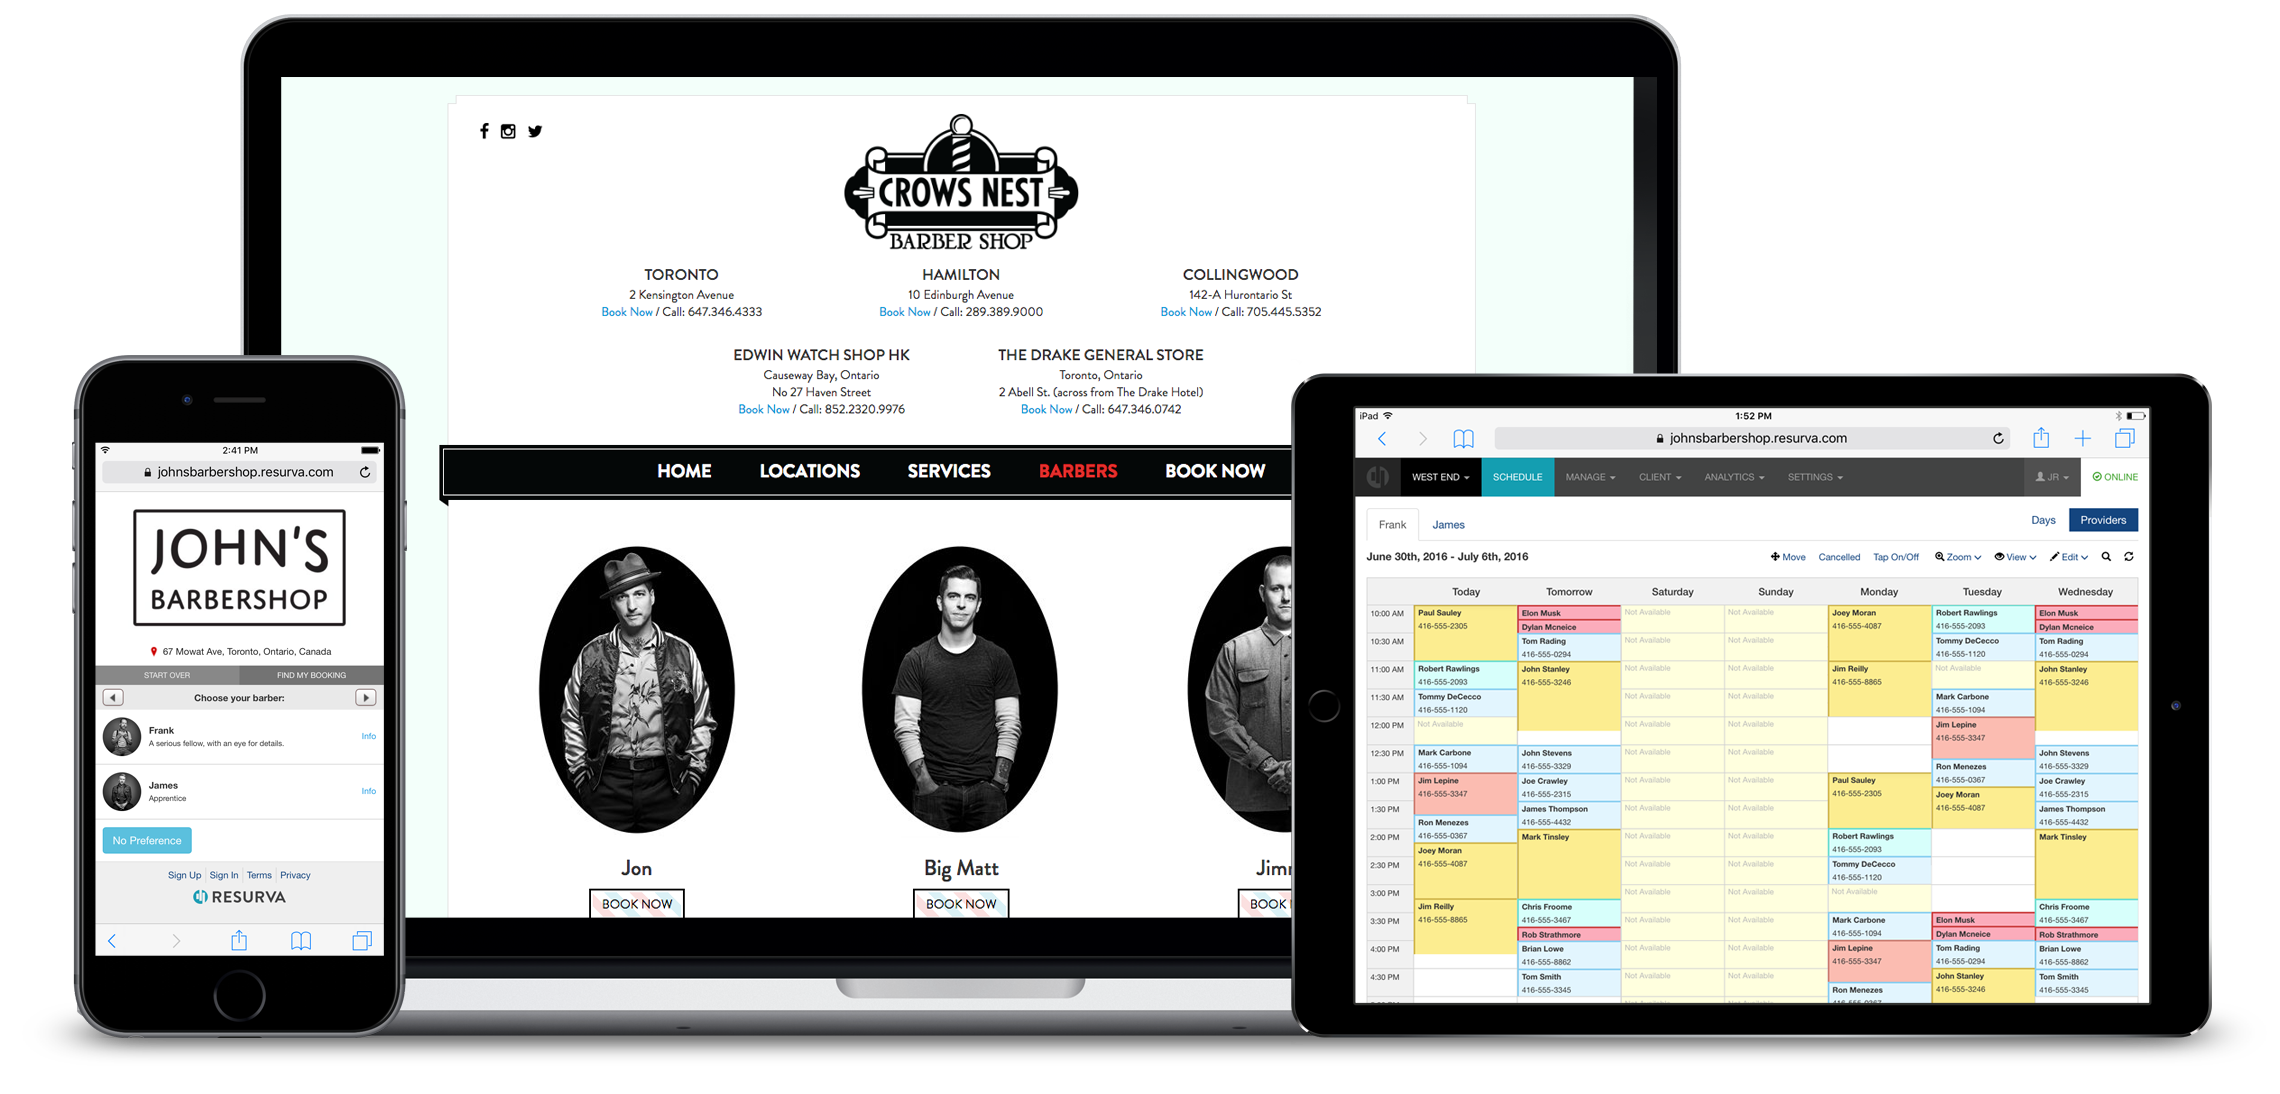 Client booking, websites by resurva, admin week view